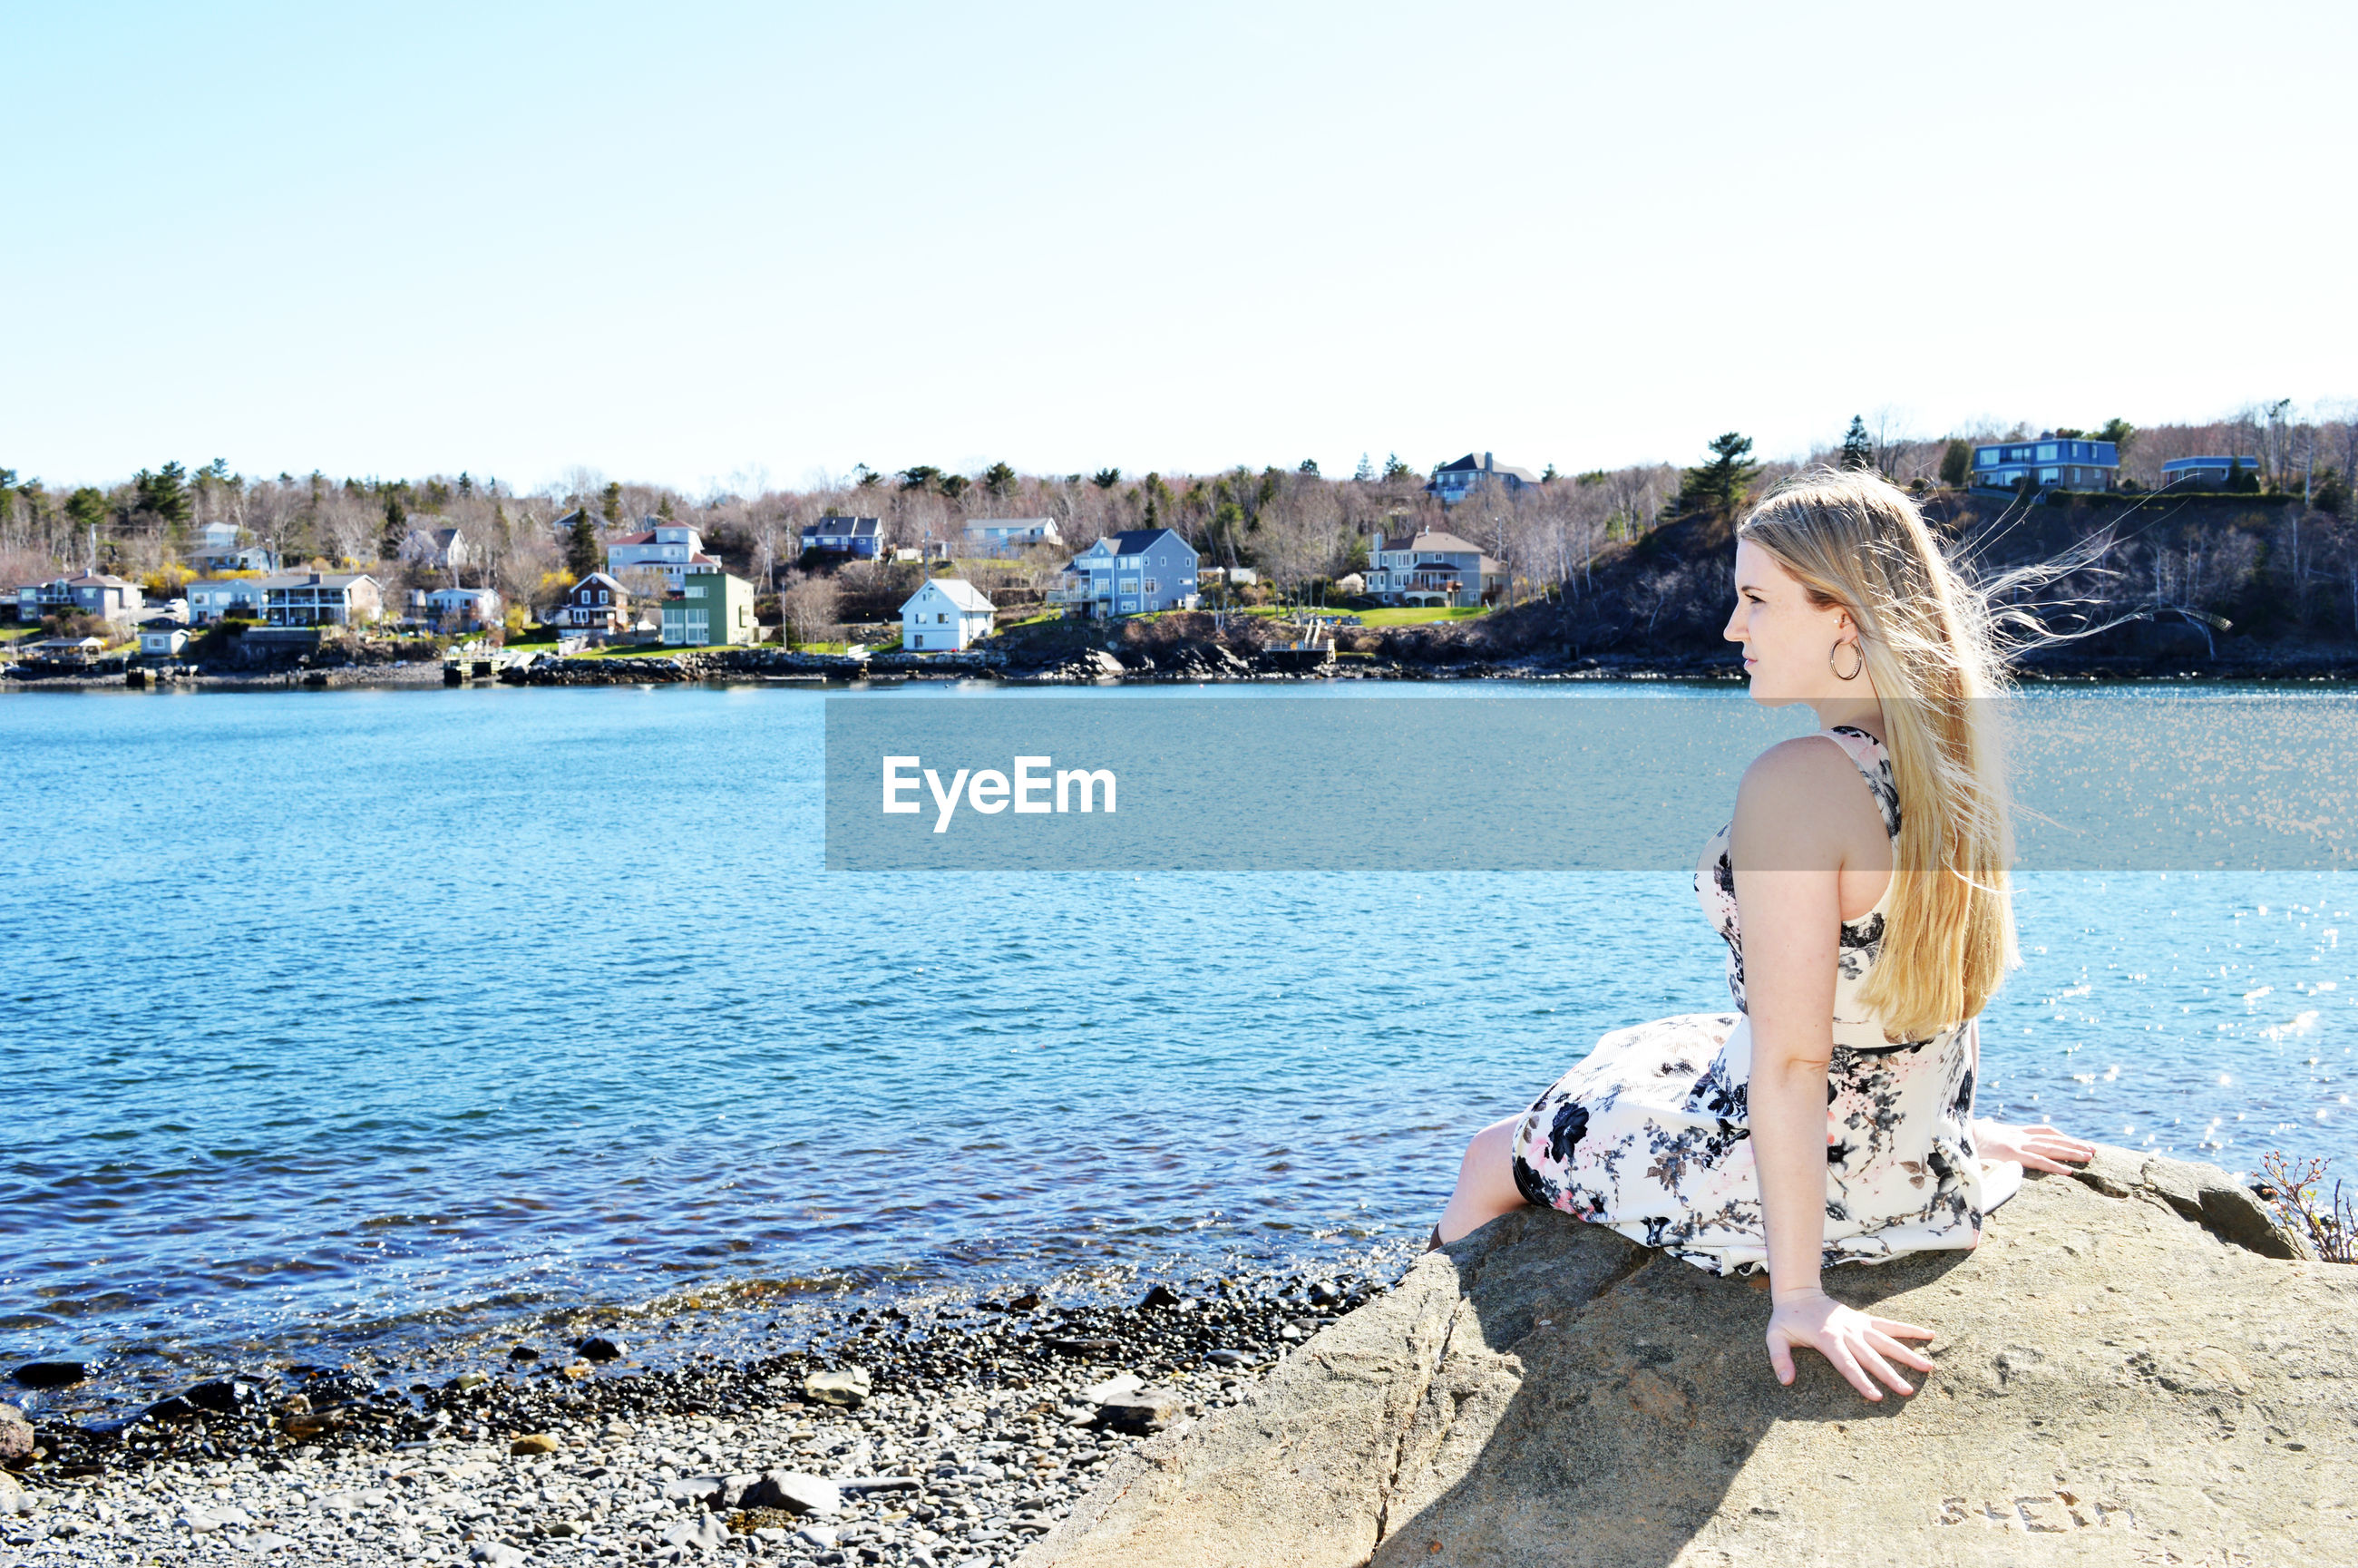 Young woman sitting on rock at lakeshore against clear sky